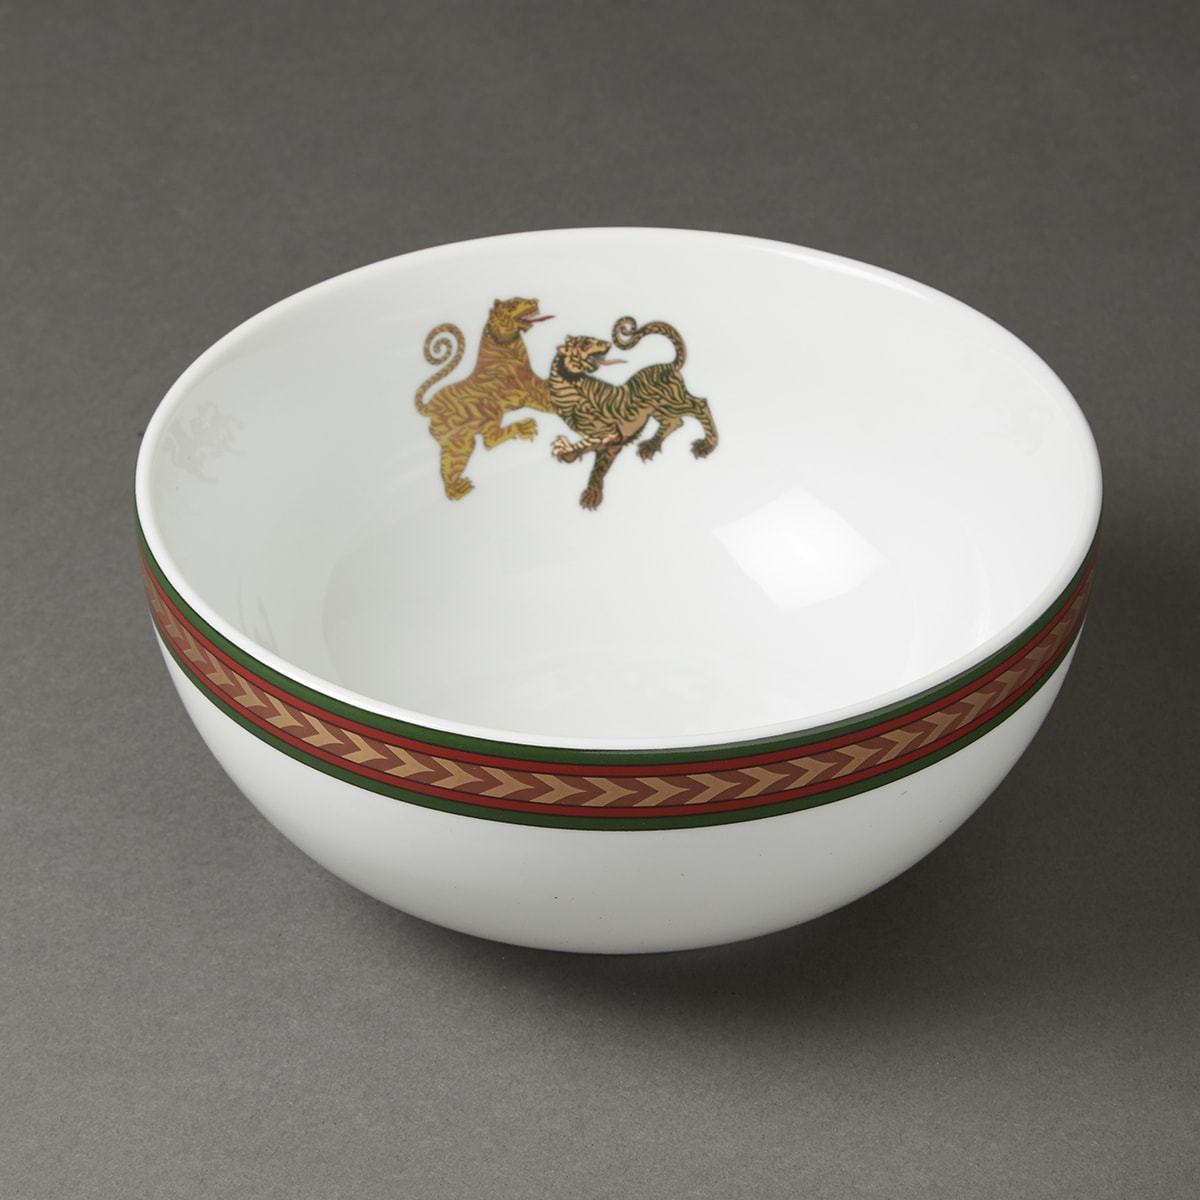 Off White Baagh Serving Bowl (Large) by Ritu Kumar Home - Home Artisan